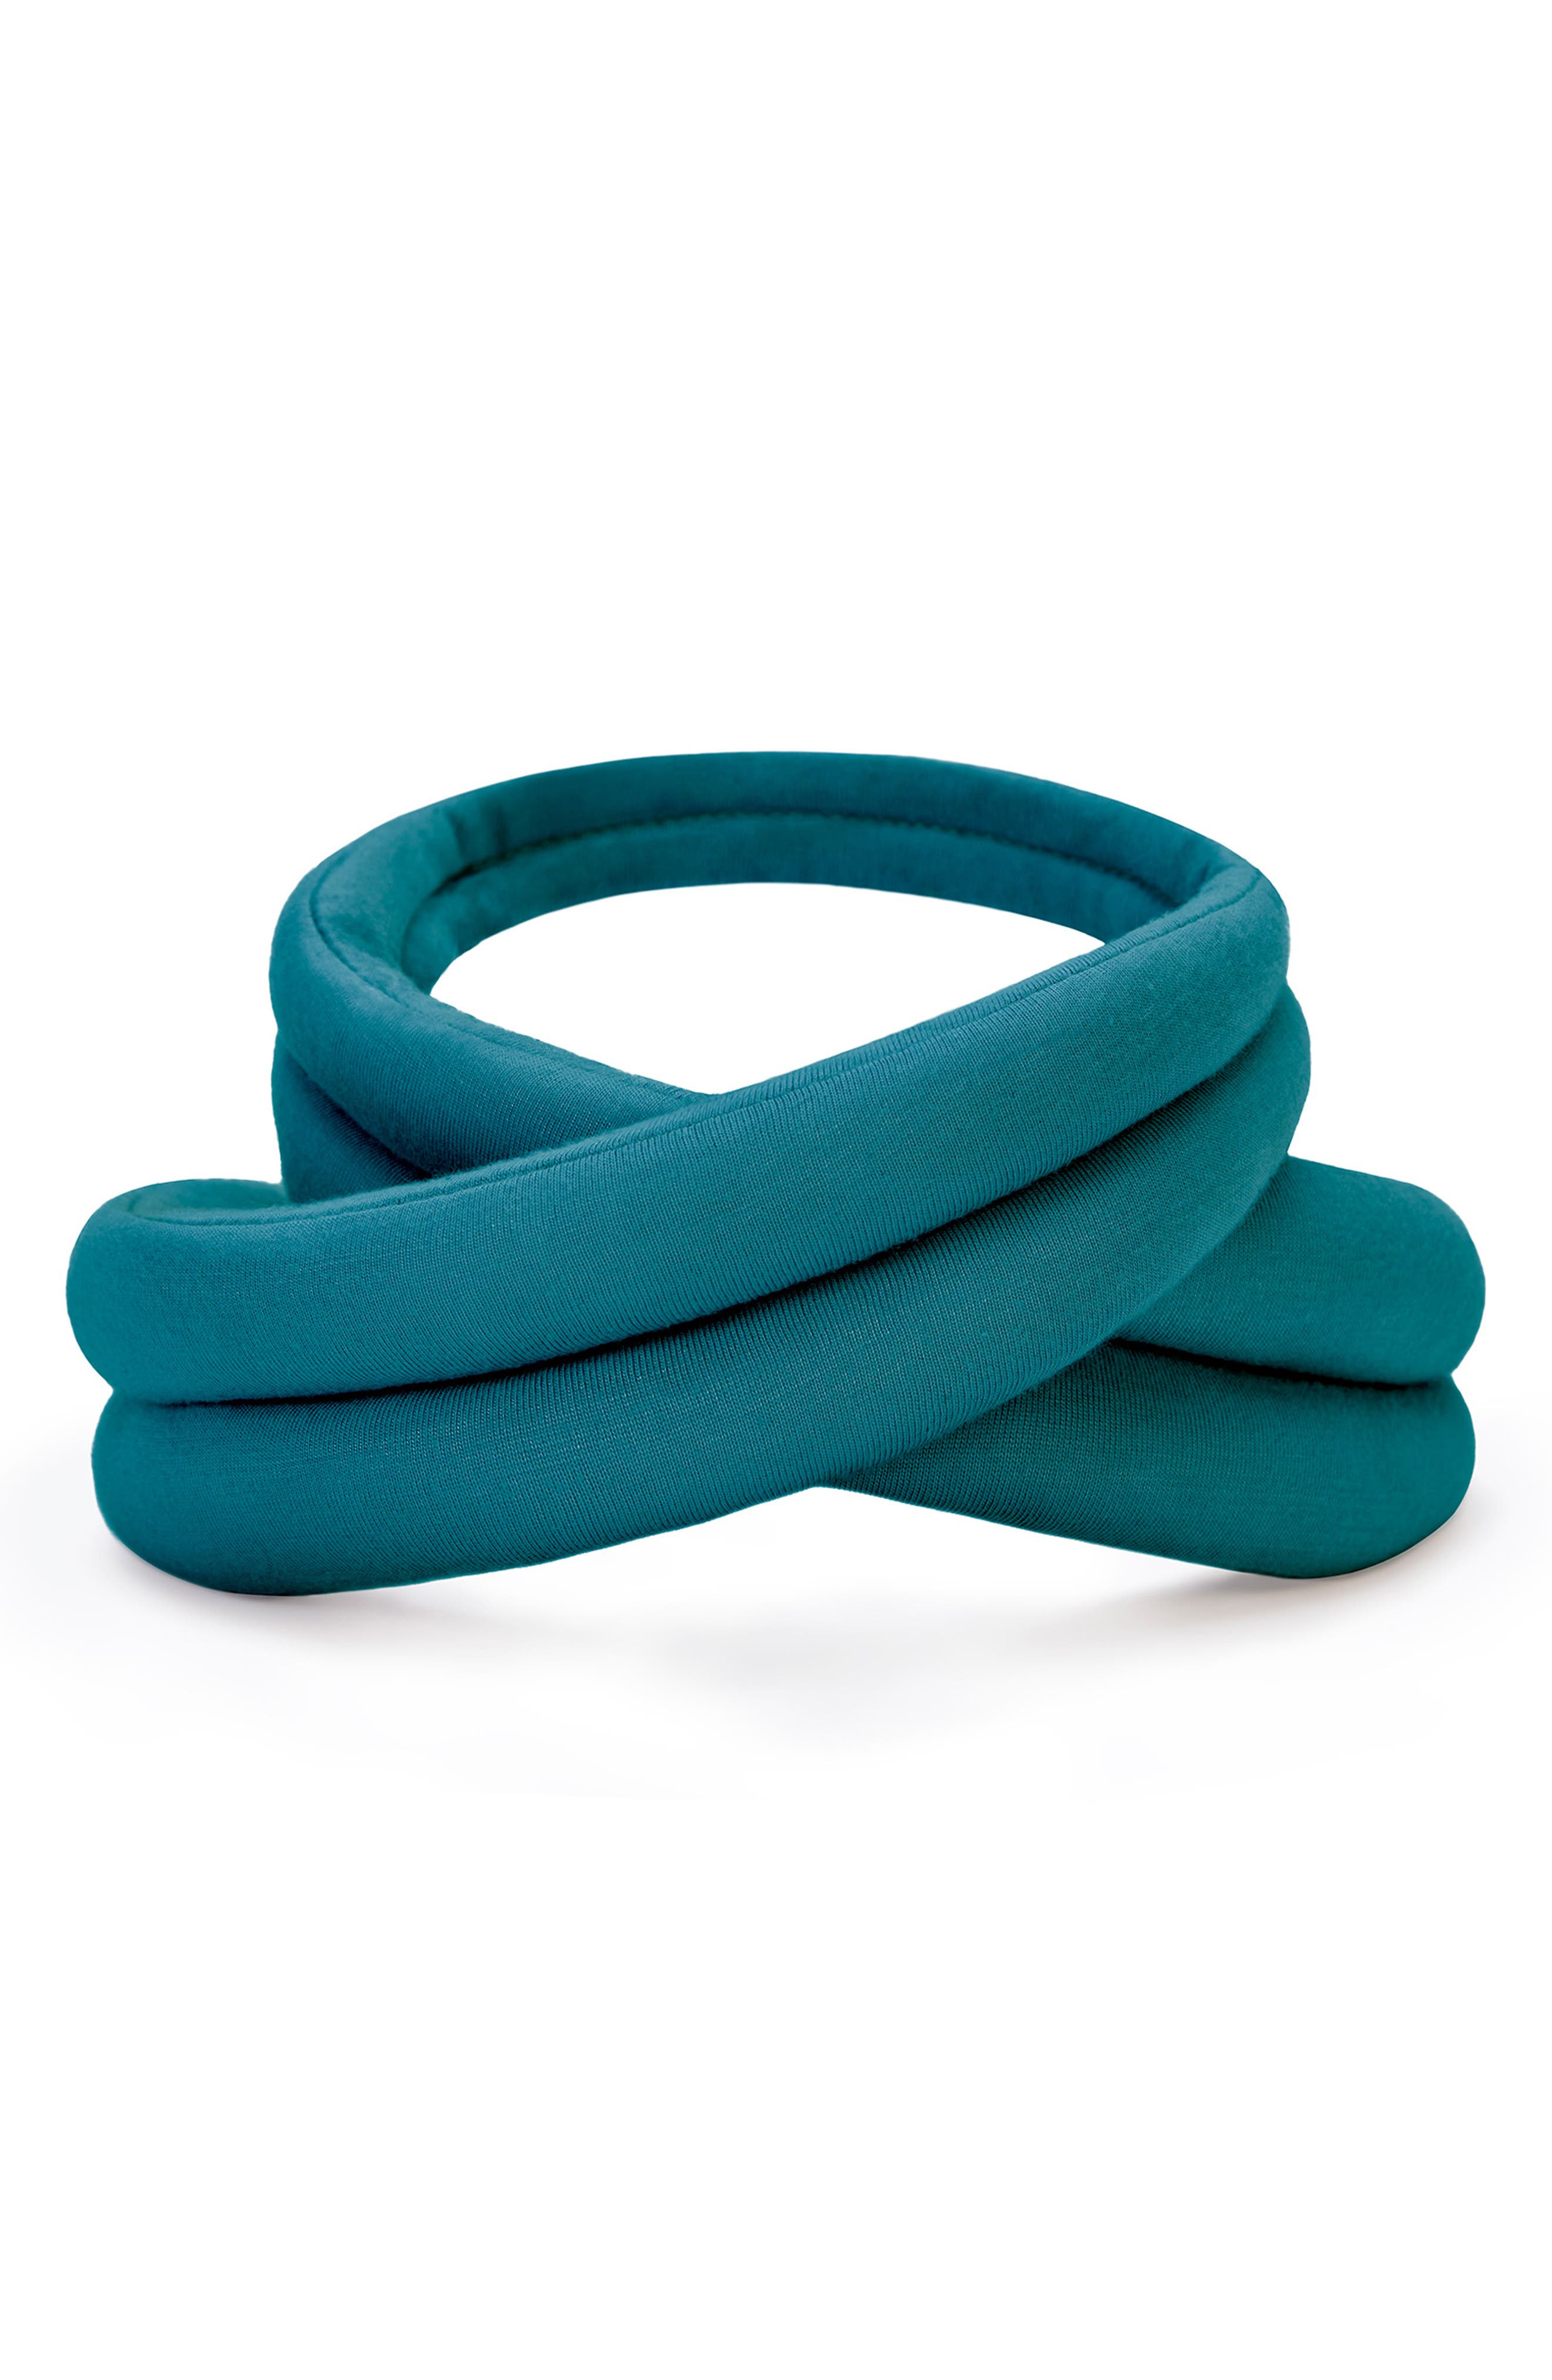 OSTRICHPILLOW<sup>®</sup> Loop Eye Mask,                             Main thumbnail 1, color,                             BLUE REEF